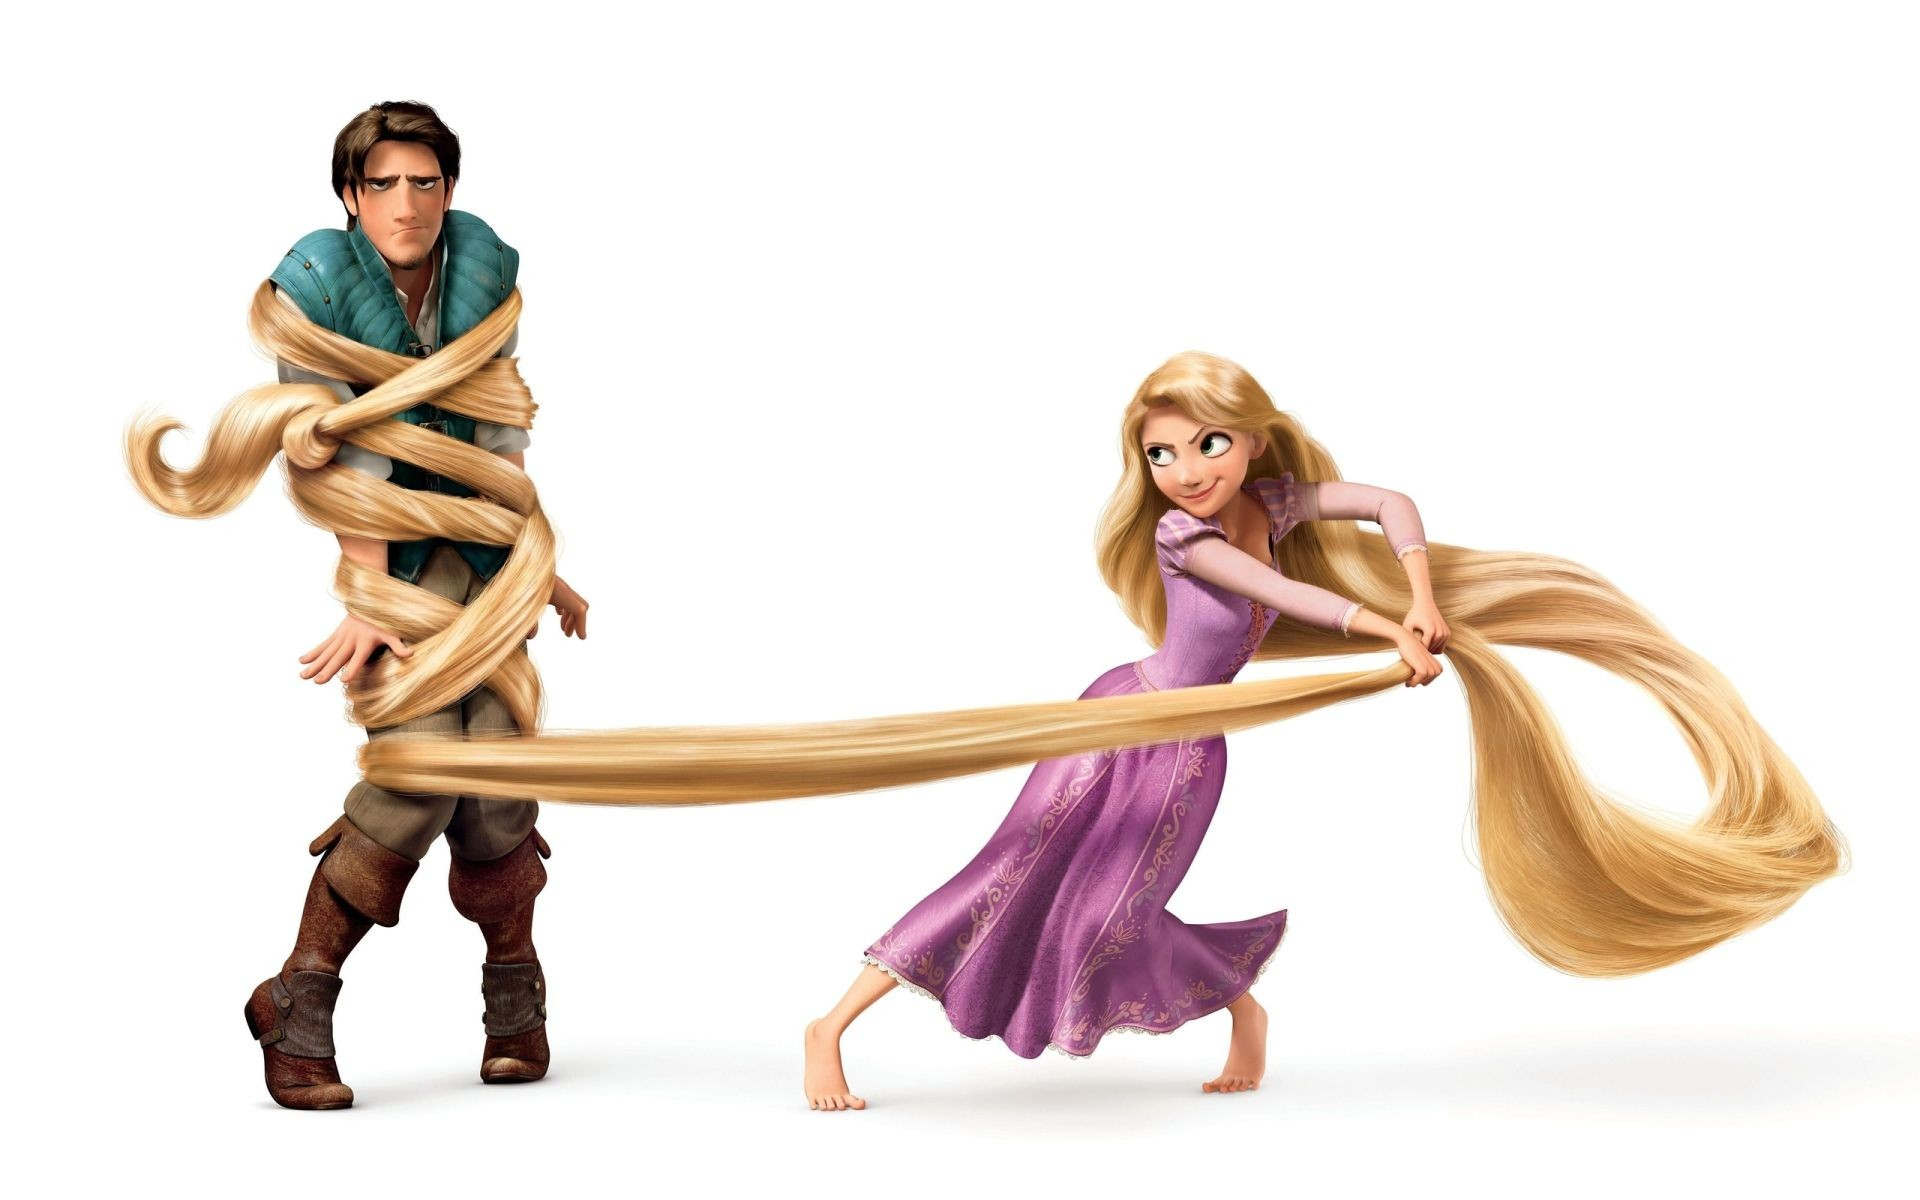 Tangled Rapunzel hd wallpaper background   HD Wallpapers 1920x1200